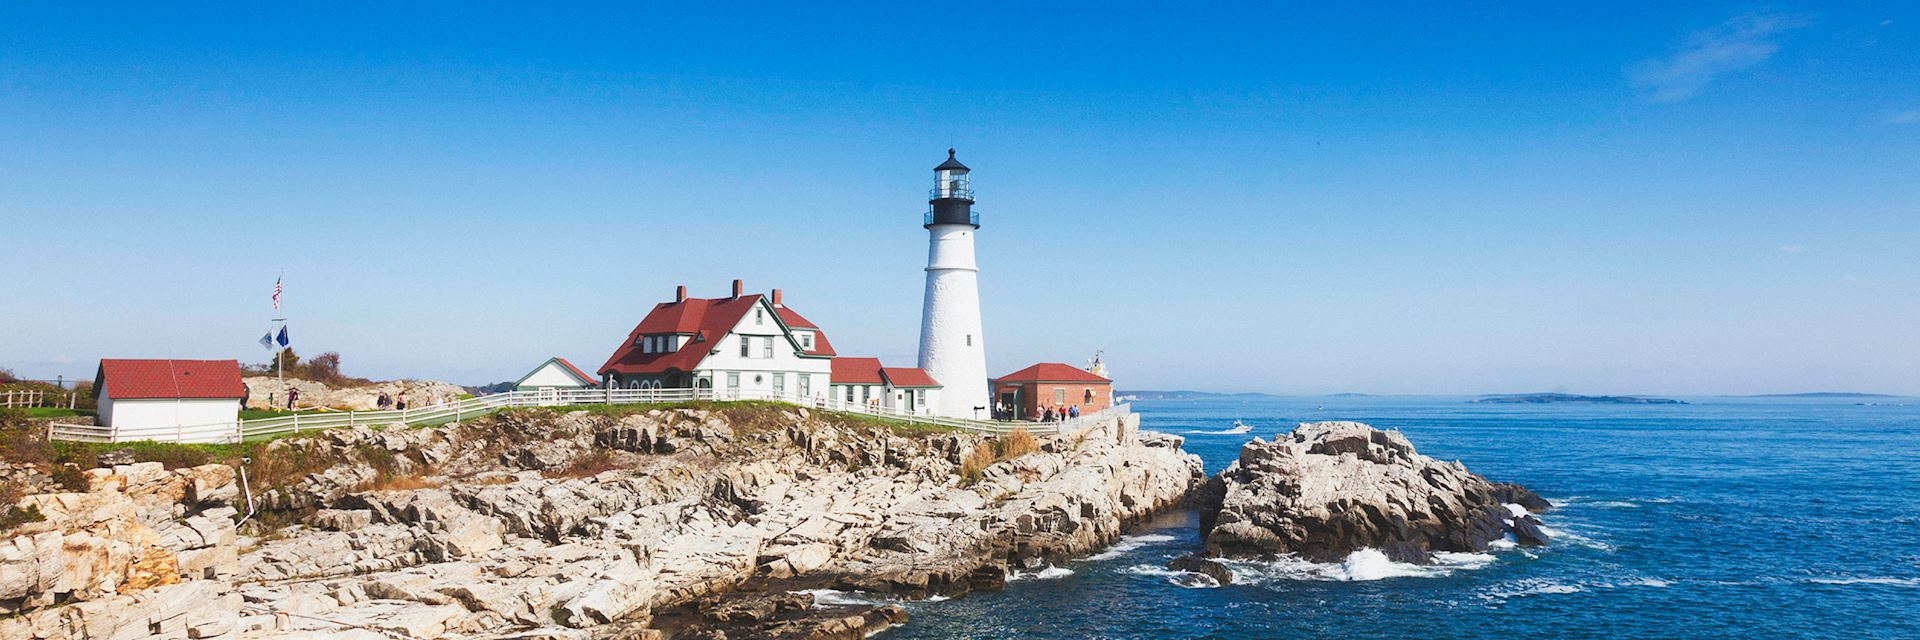 Portland lighthouse, New England